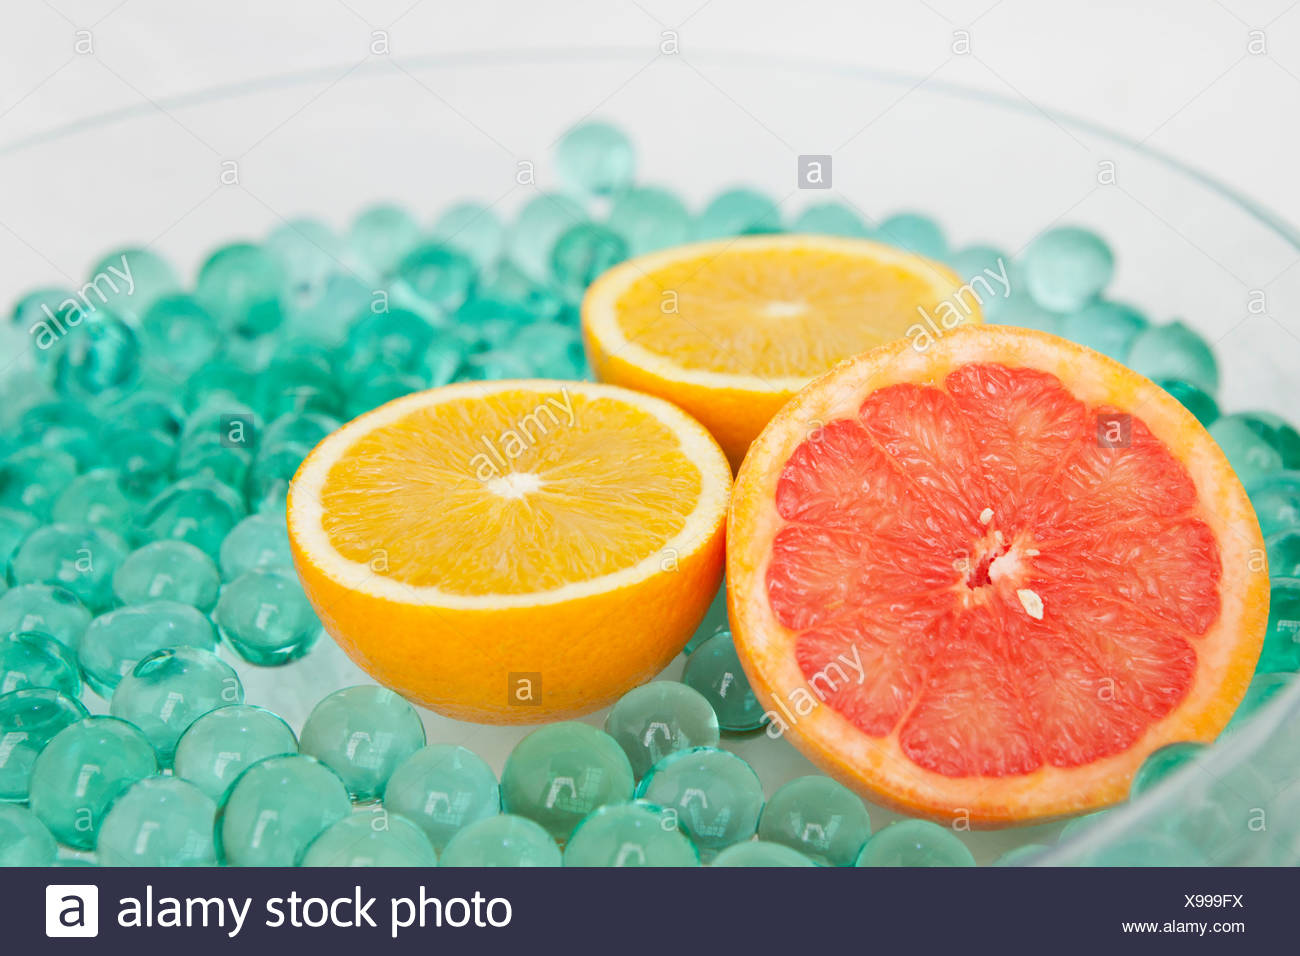 Halved citrus fruits with glass beads - Stock Image